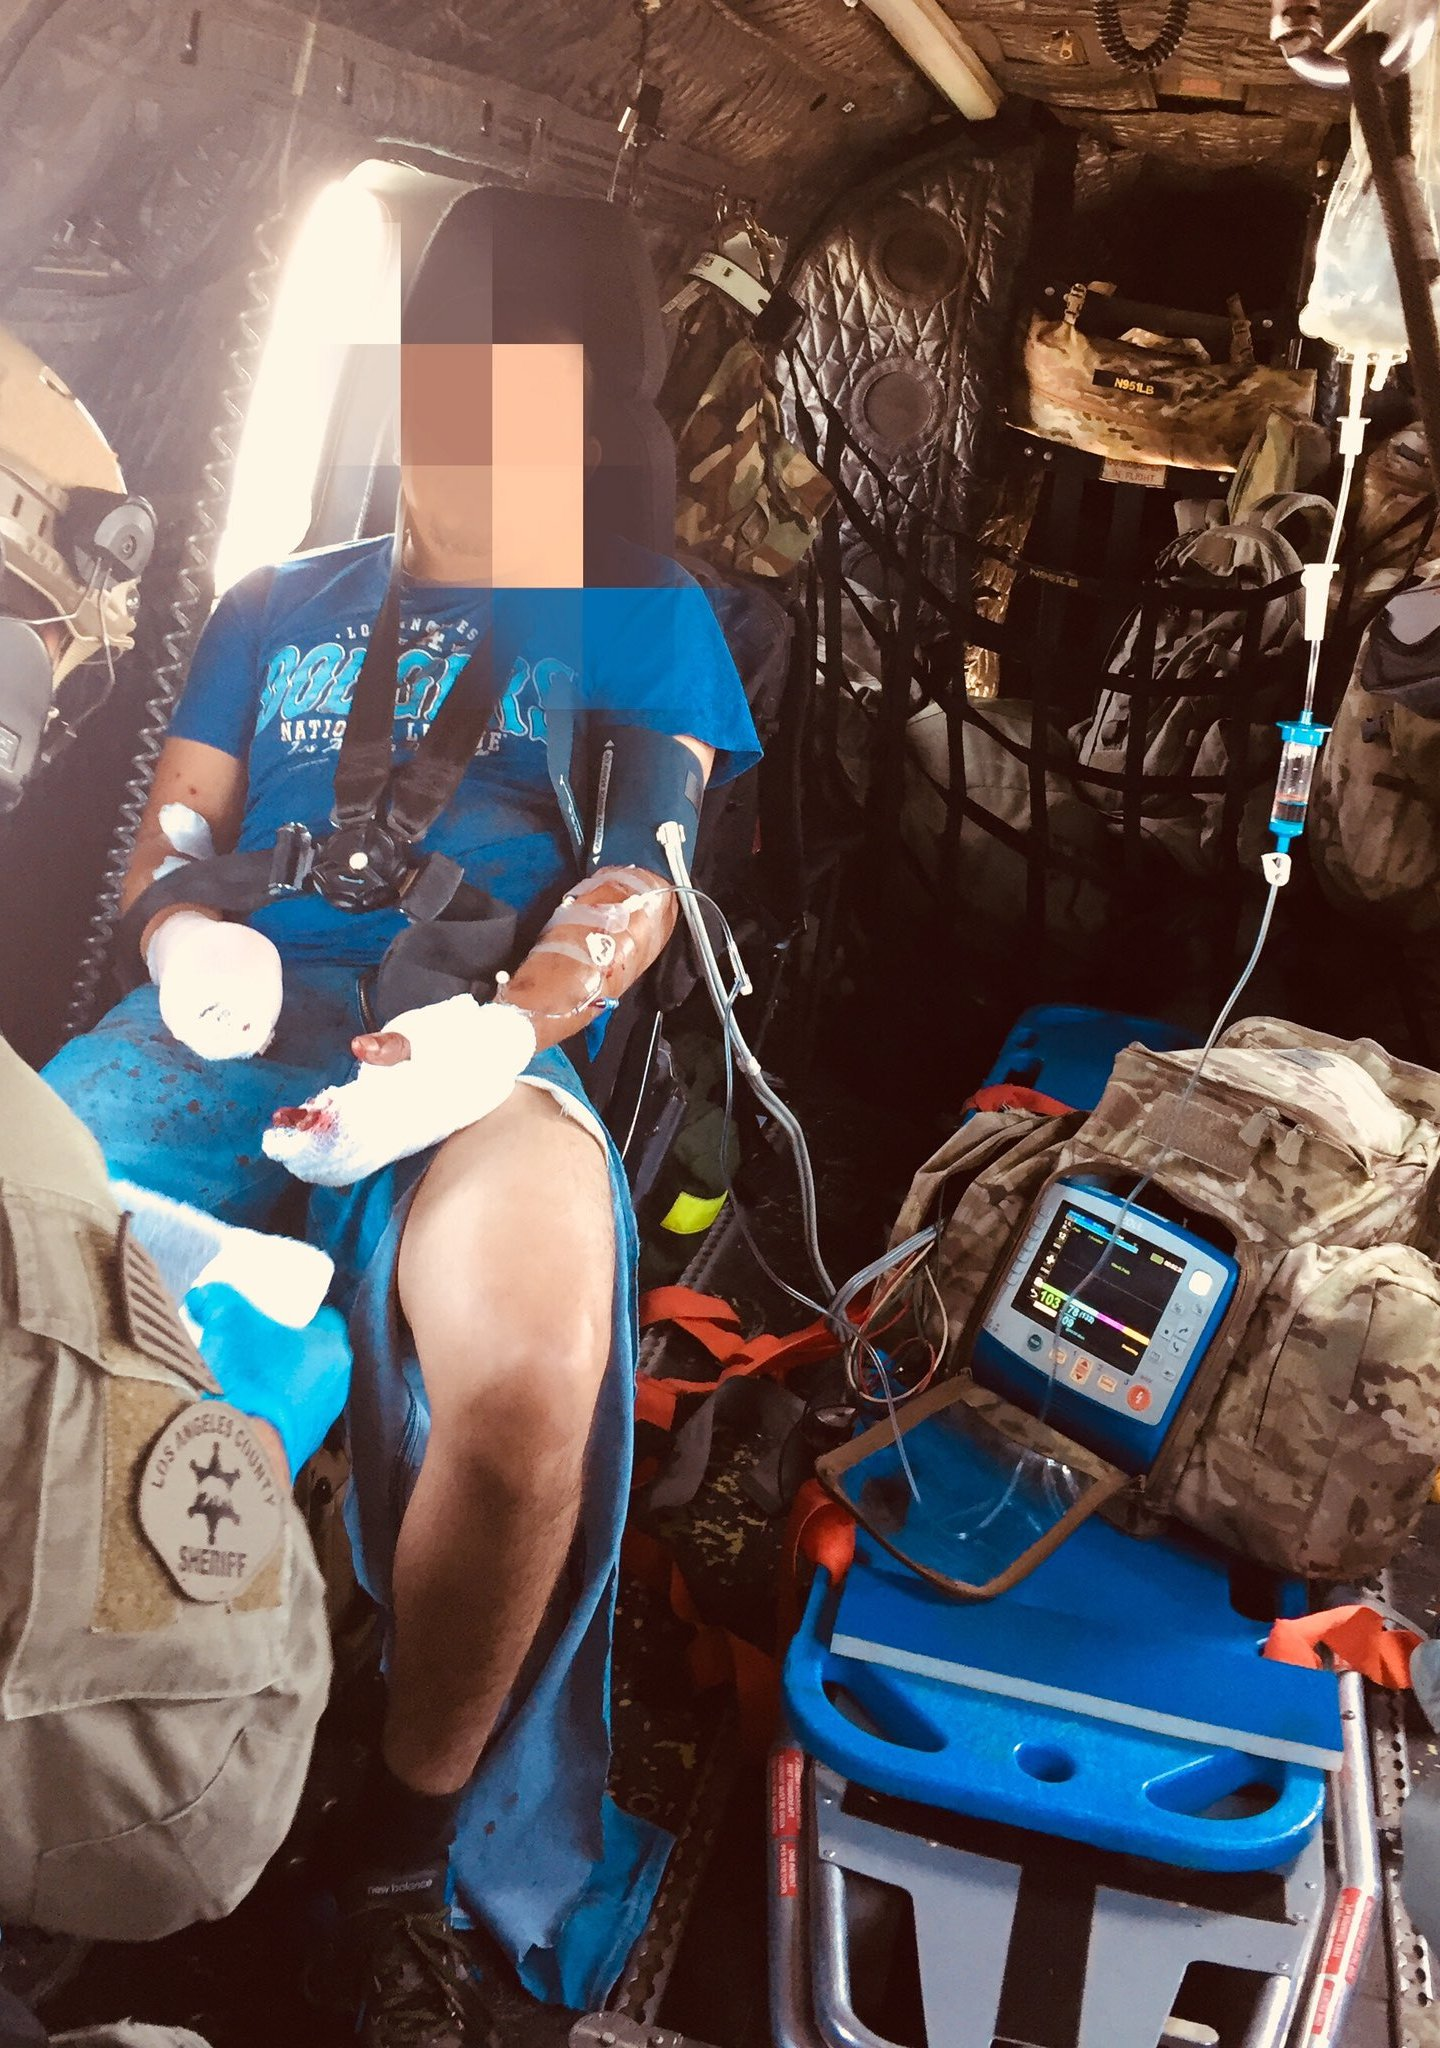 Los Angeles County sheriff's officials released this image of a man being airlifted for treatment of a fireworks injury on July 2, 2018.